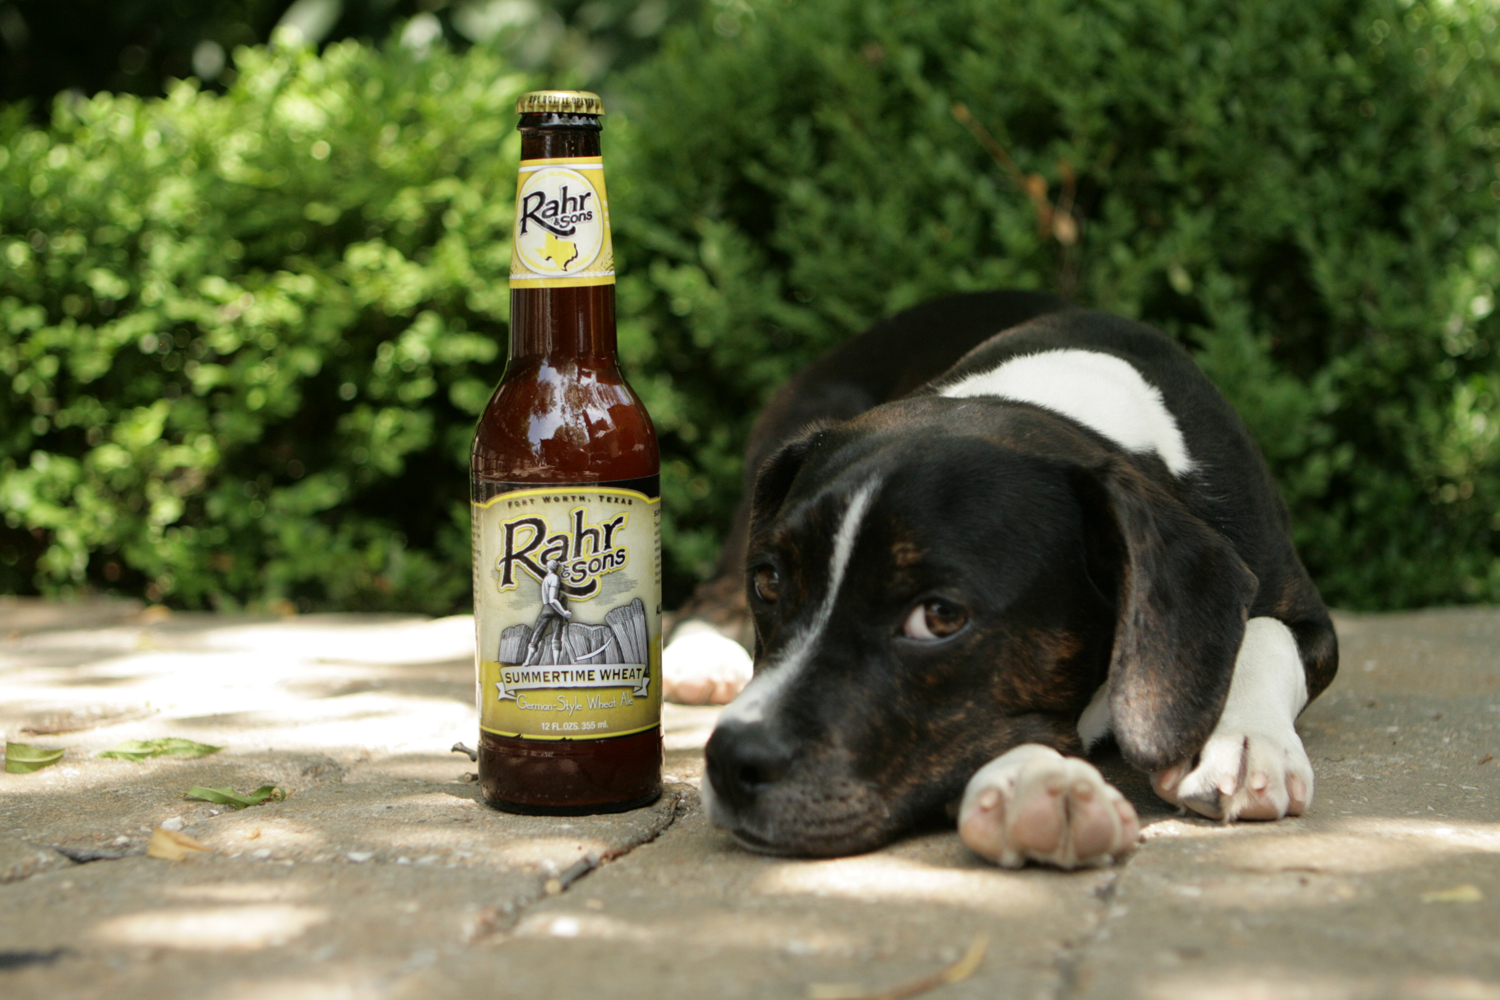 Drink Summertime Wheat beer from Rahr during the dog days of summer.